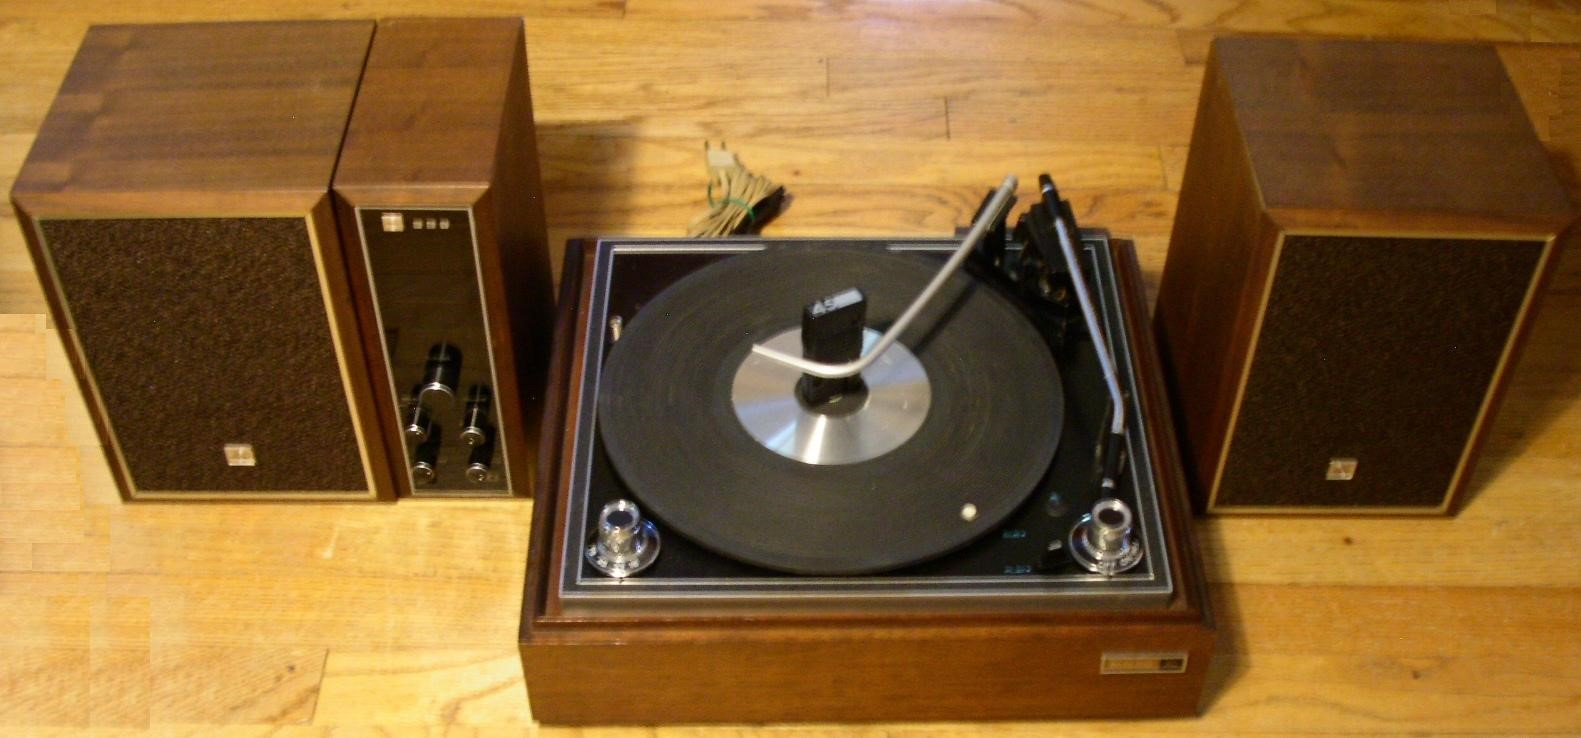 Toshiba-Table-Top-Stereo-System